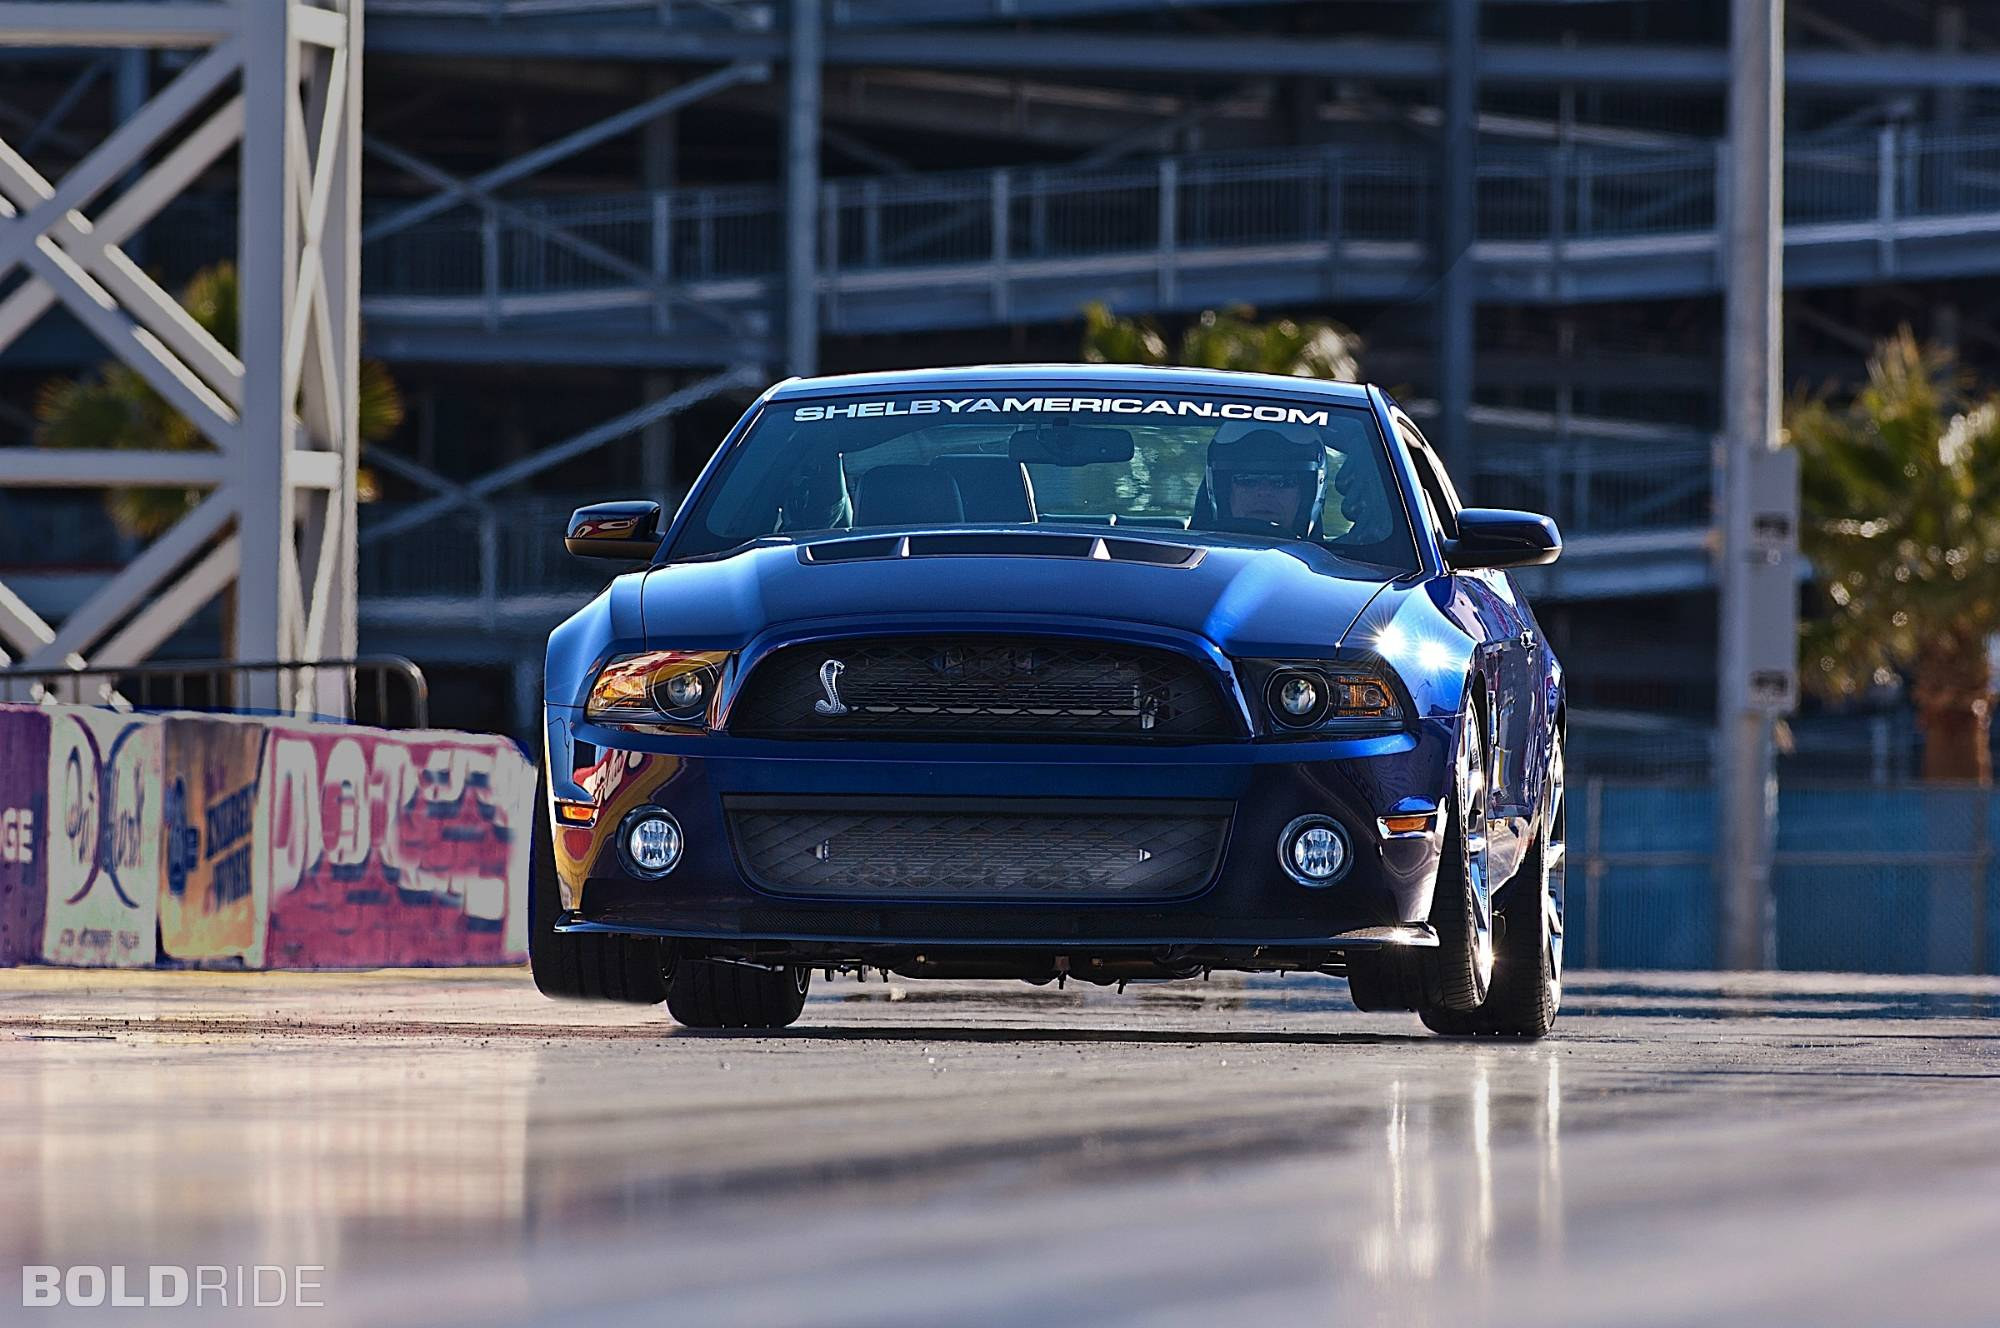 2012 Ford Mustang Shelby 1000 drag racing race car hot rod muscle ...